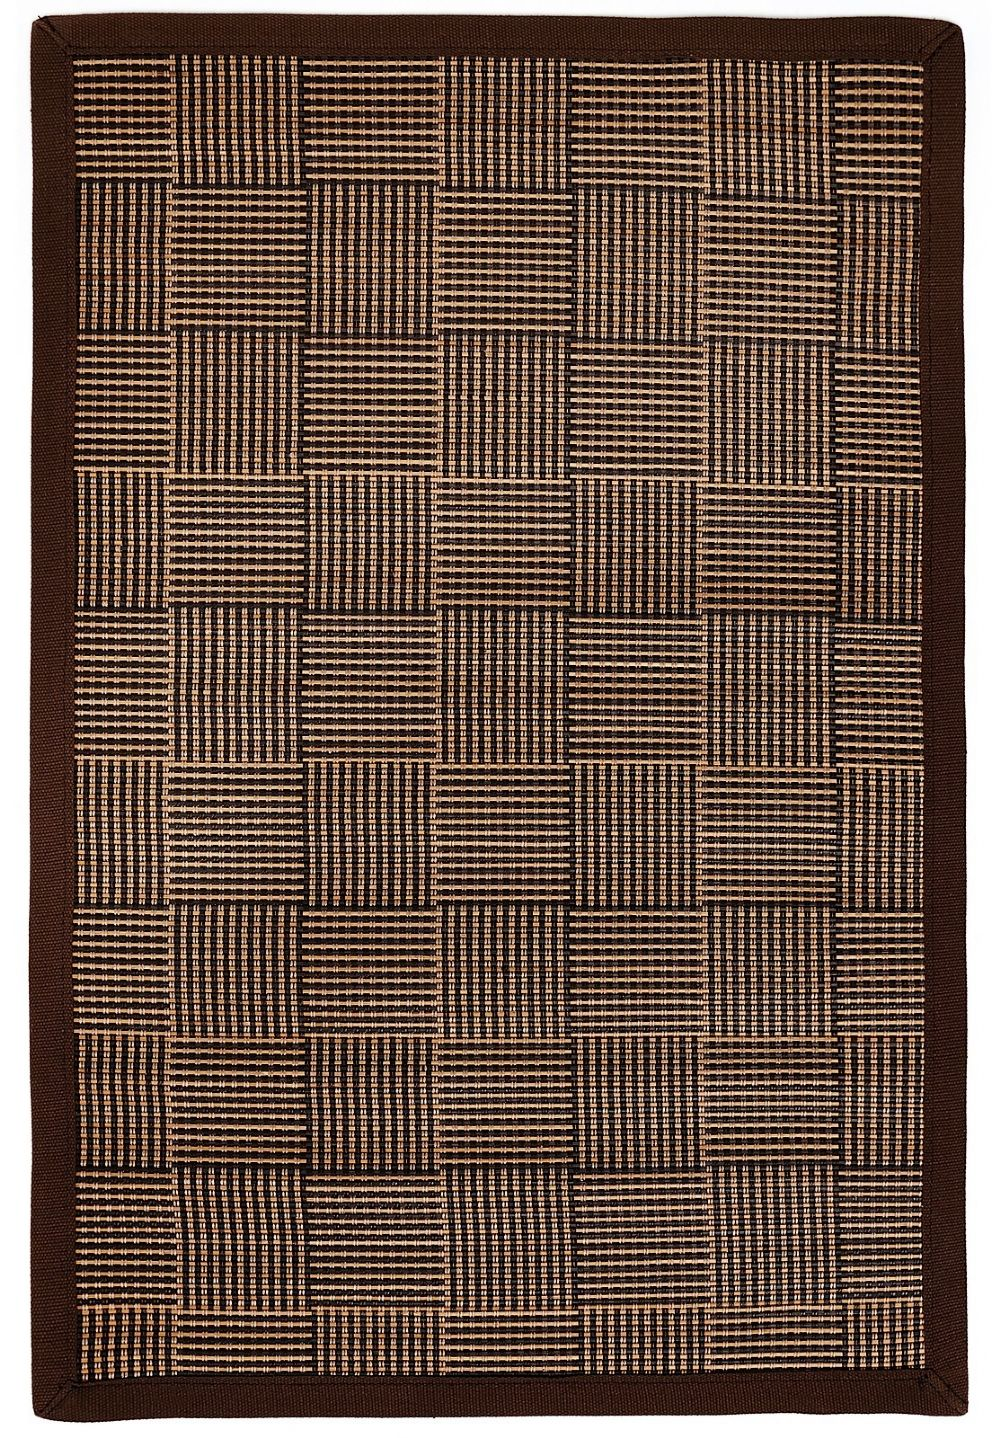 anji mountain pizzelle bamboo area rug collection